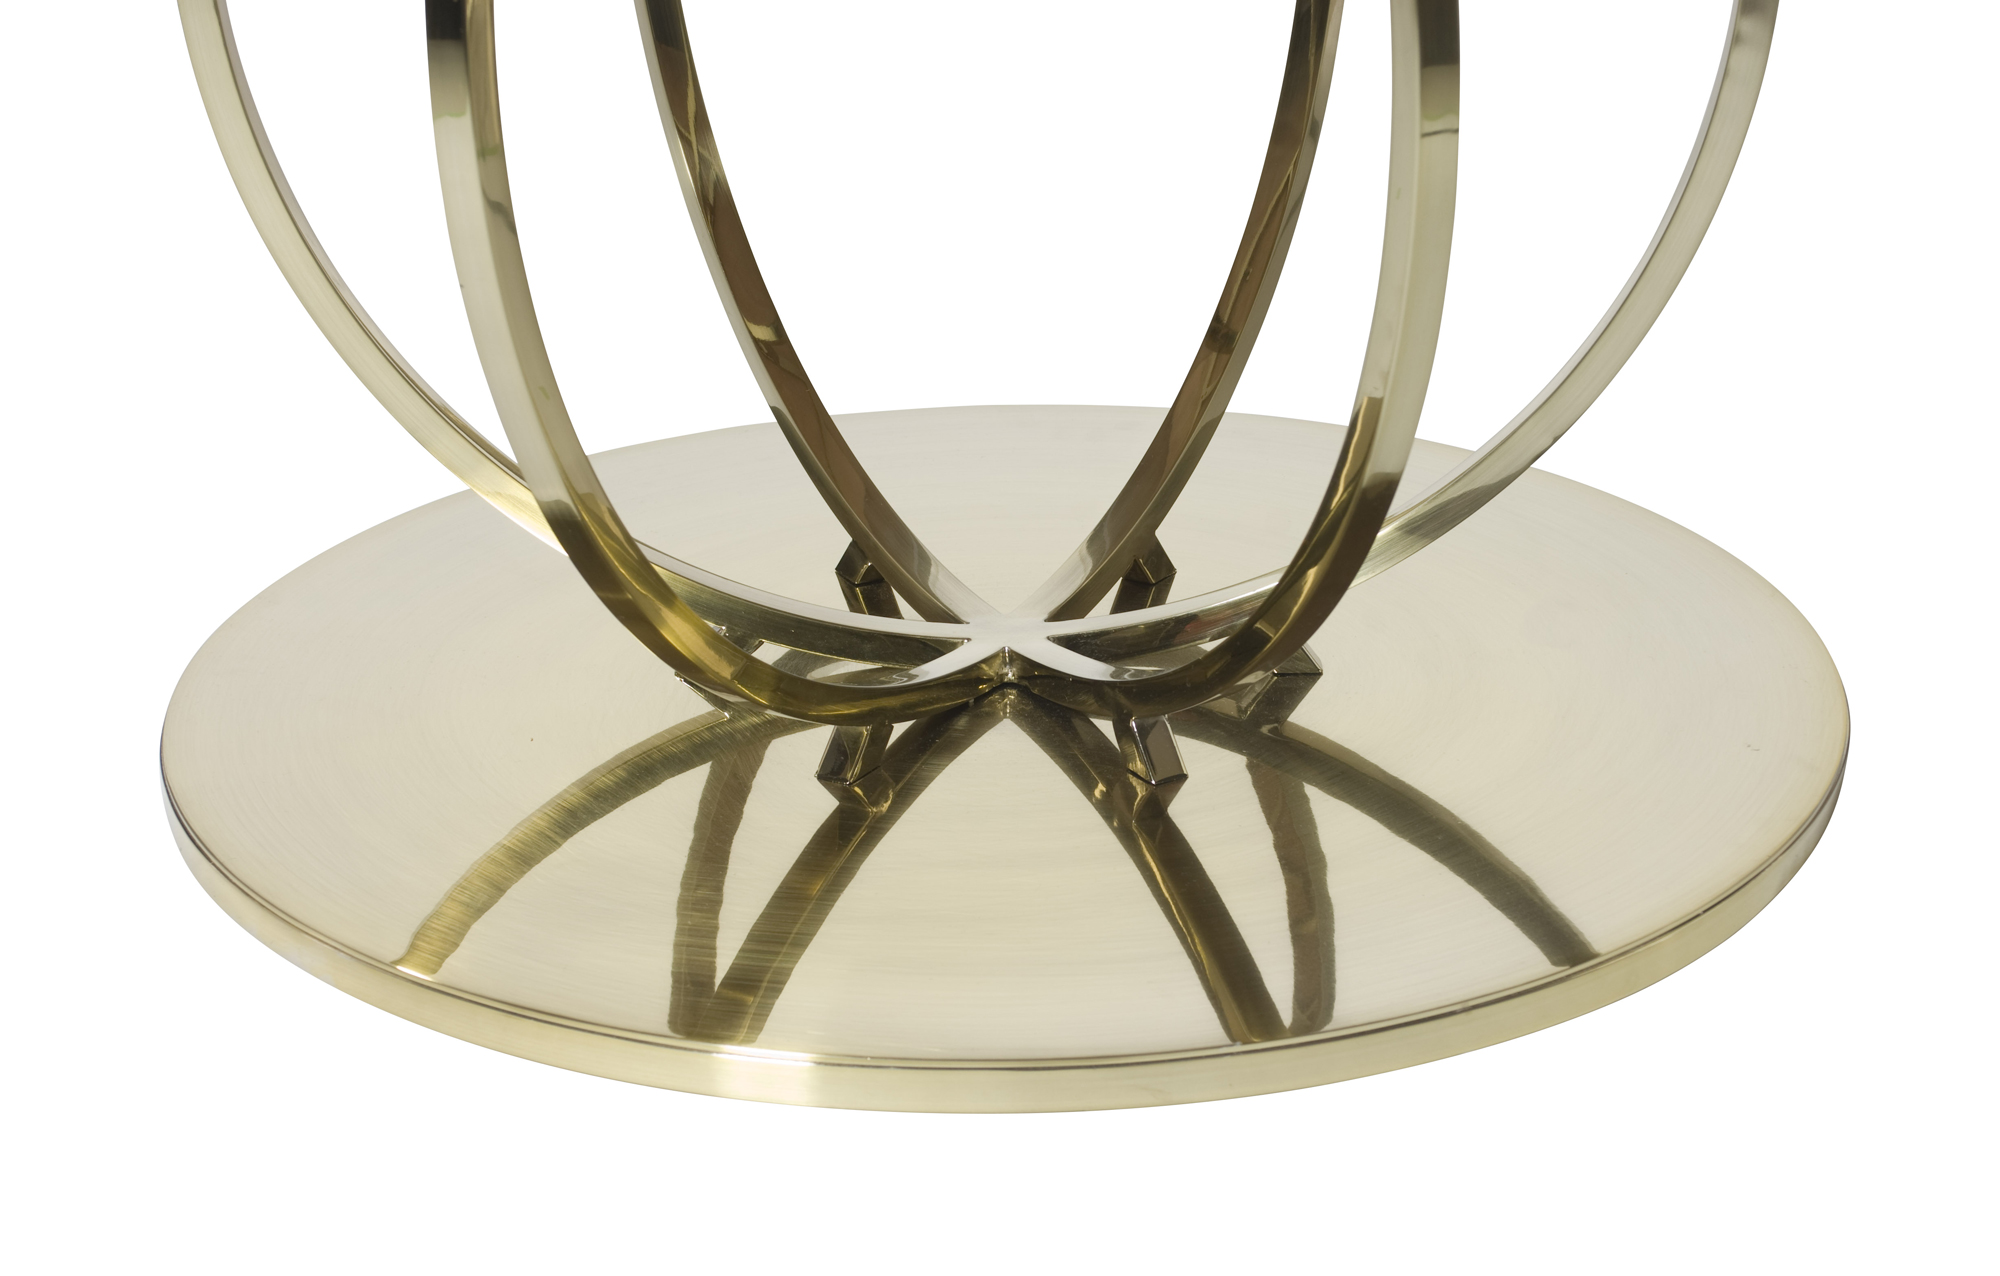 Round Dining Table Bernhardt : 356metal from bernhardt.com size 2000 x 1276 jpeg 577kB